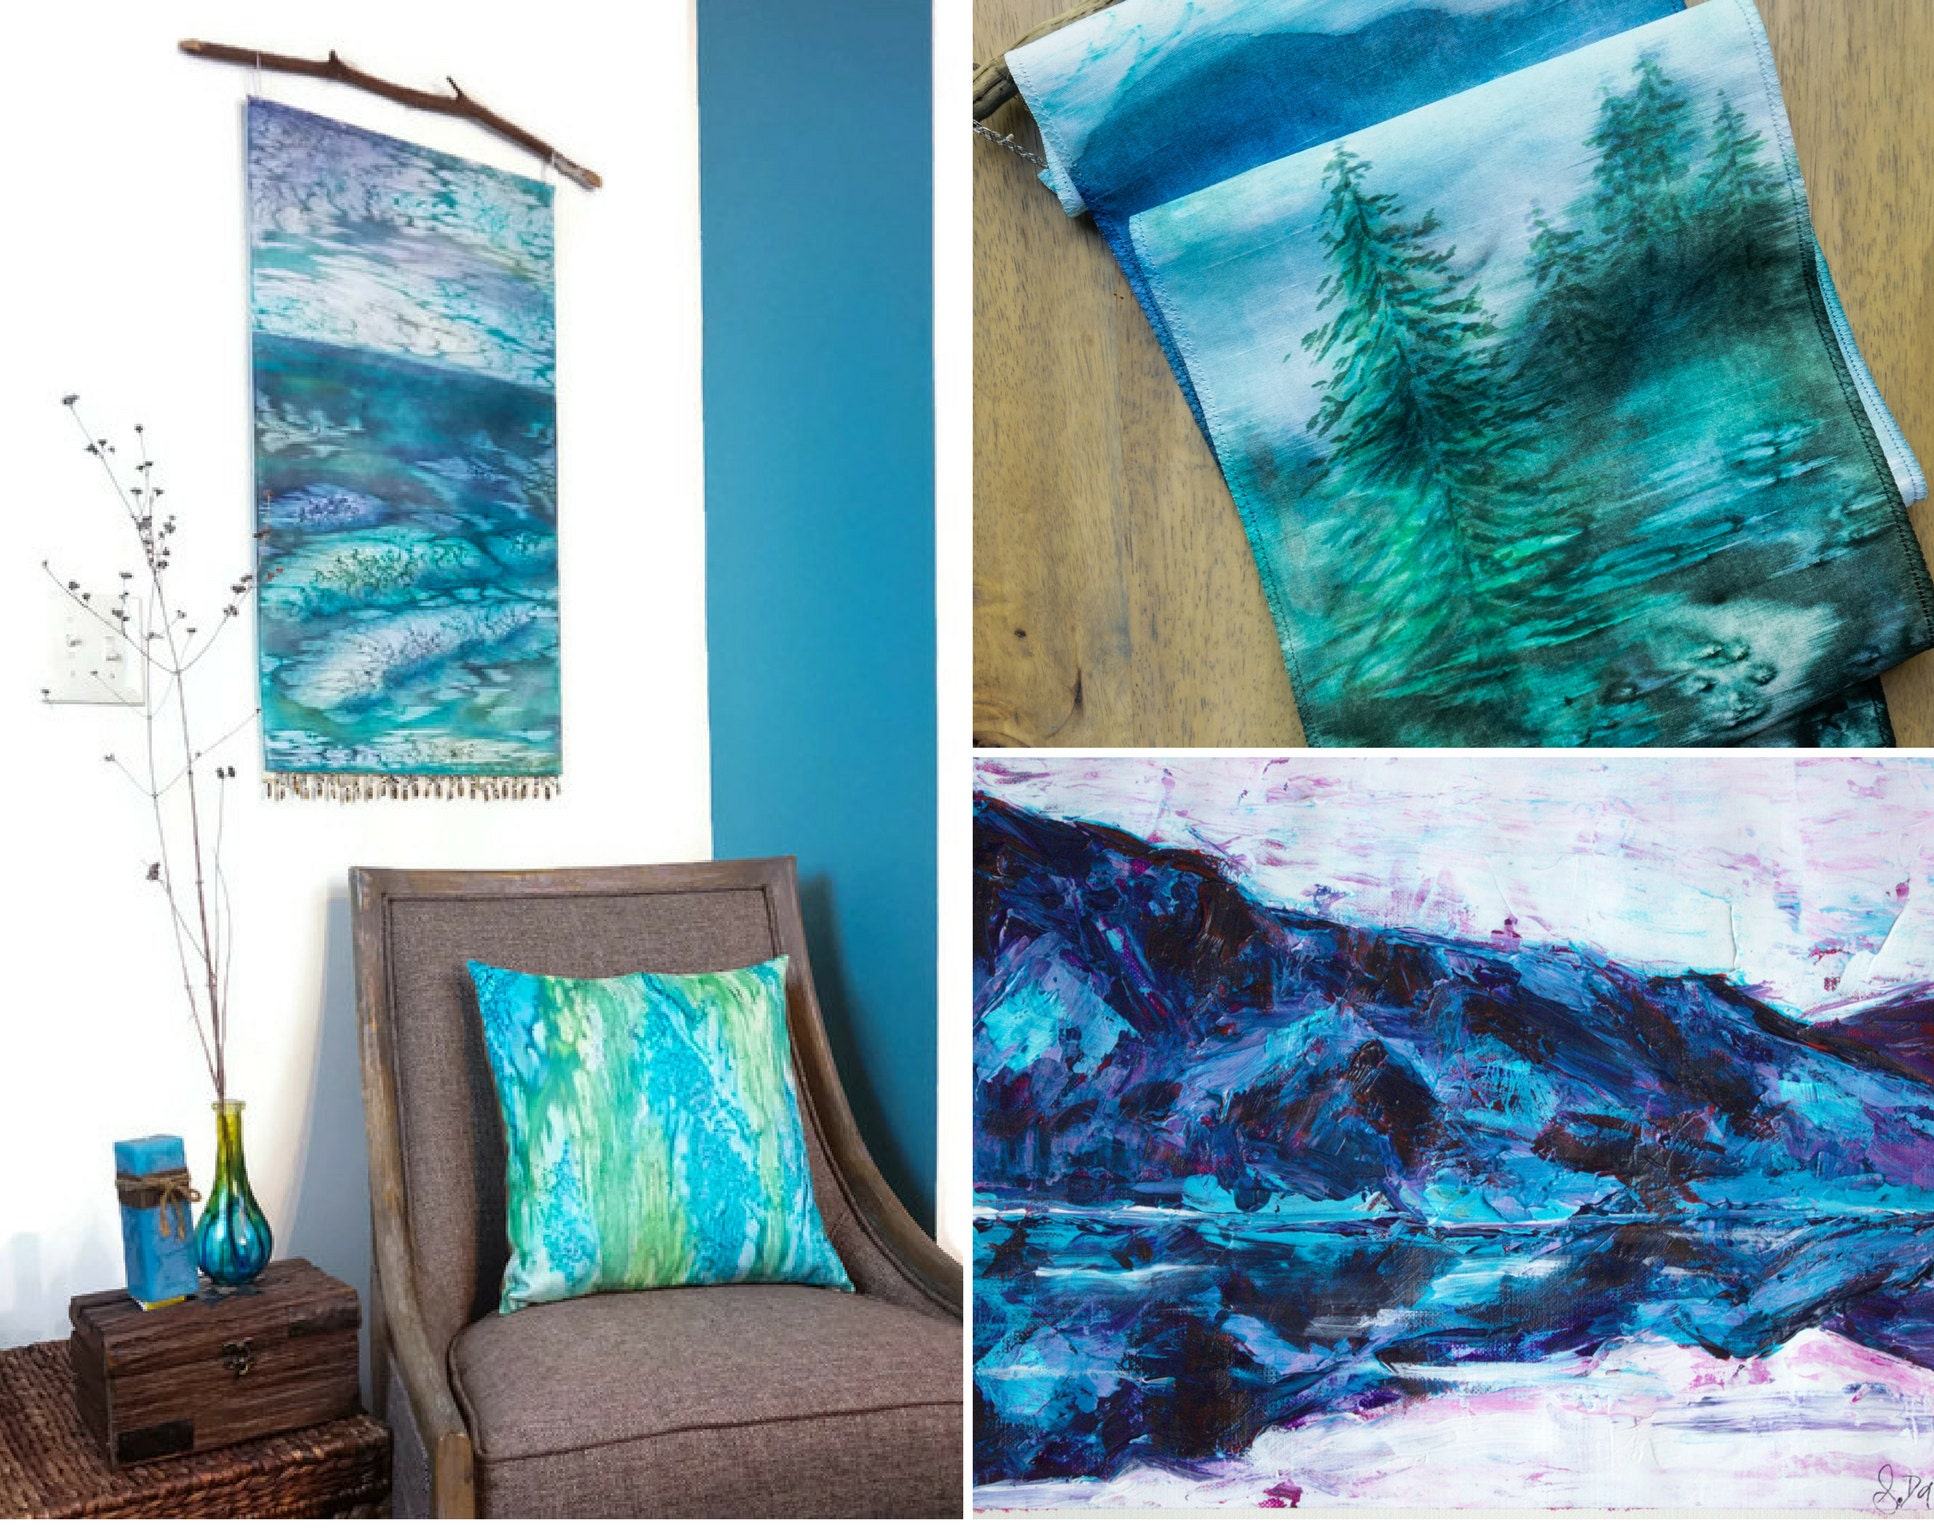 Some of our new pieces in blues, aquas, and greens are sure to bring to mind childhood memories of splashing about in cool waters on a hot day. See the items above and more new work in our shop here.  Keep an eye open for our newest item - soft velvet pillows with a subtle ombre fade!